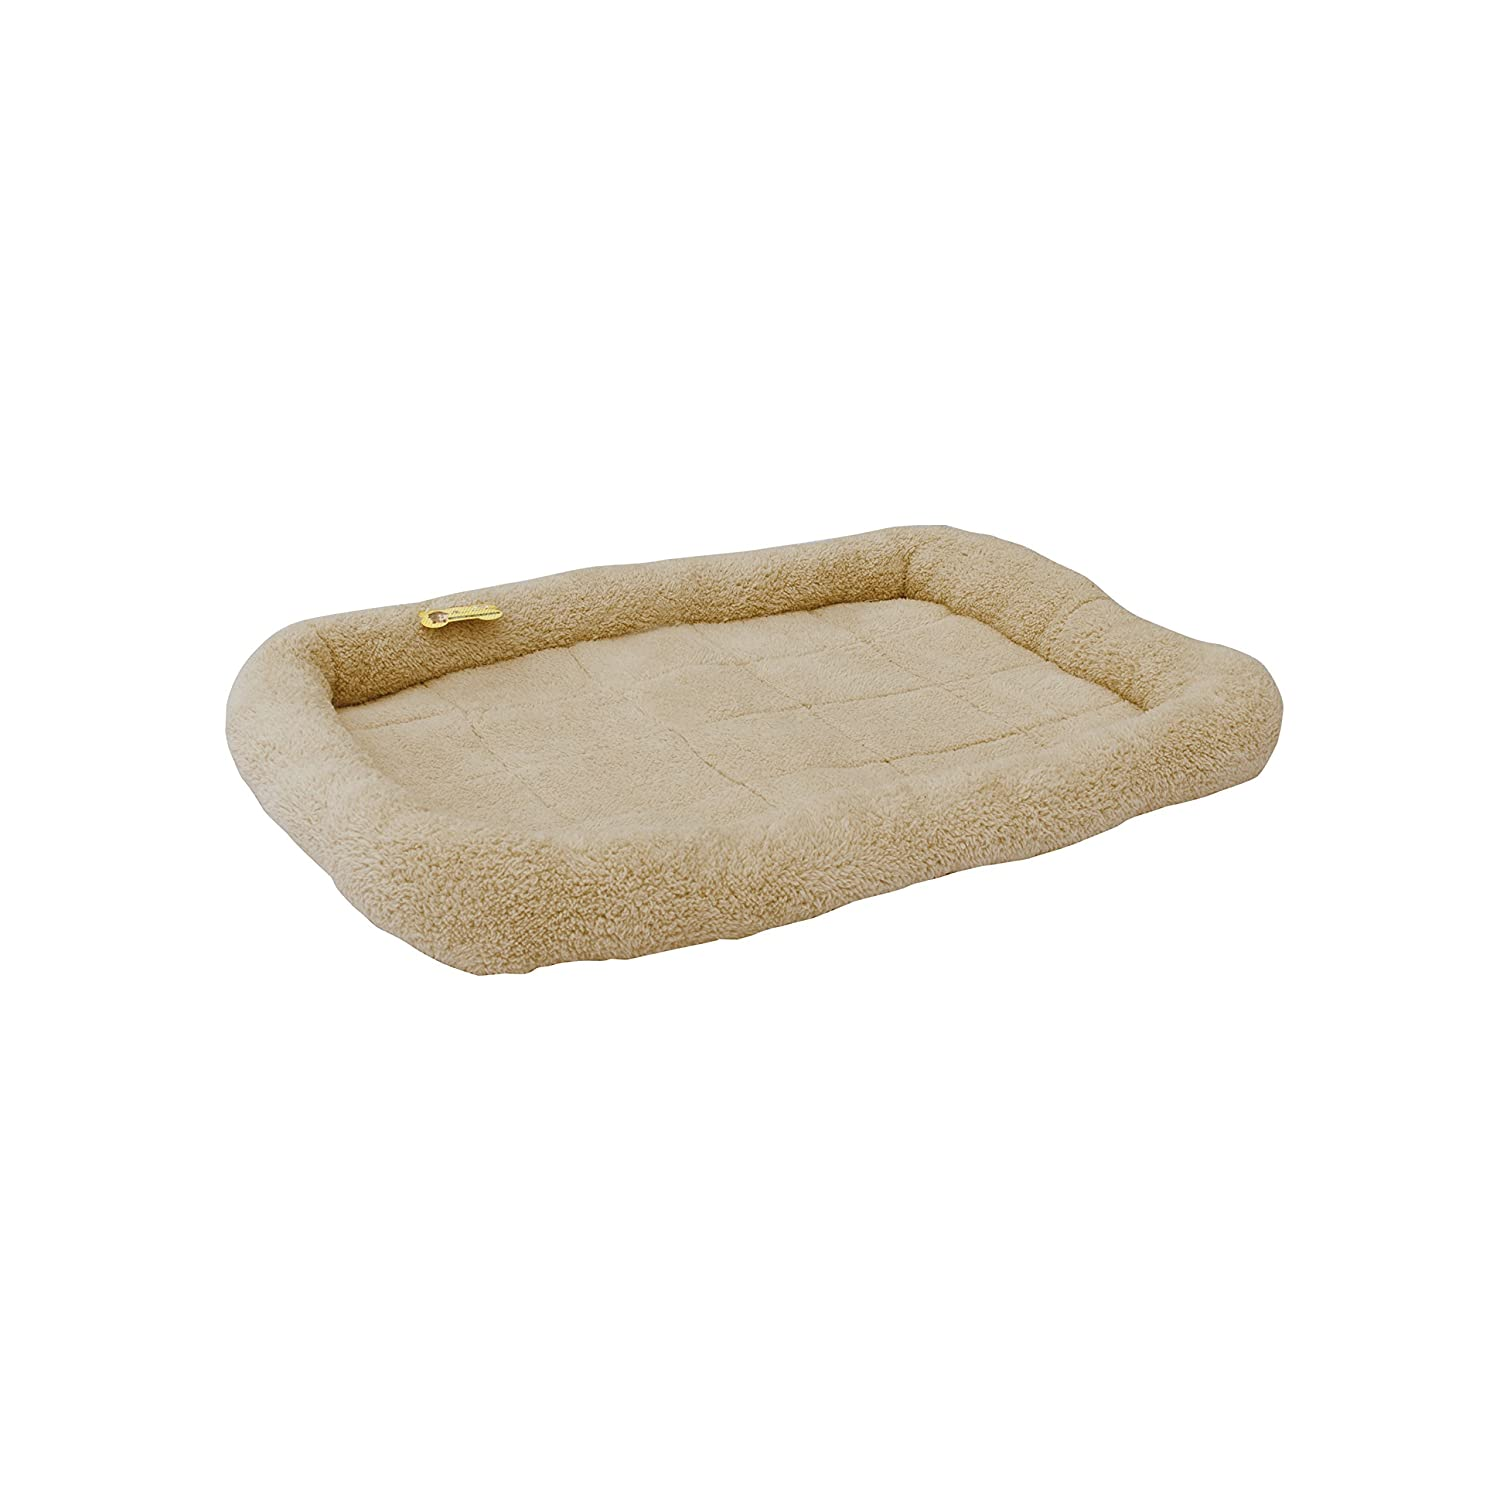 ALEKO PCM05L Soft Plush Beige Comfy Pet Bed Cushion Mat for Dogs and Cats, Large